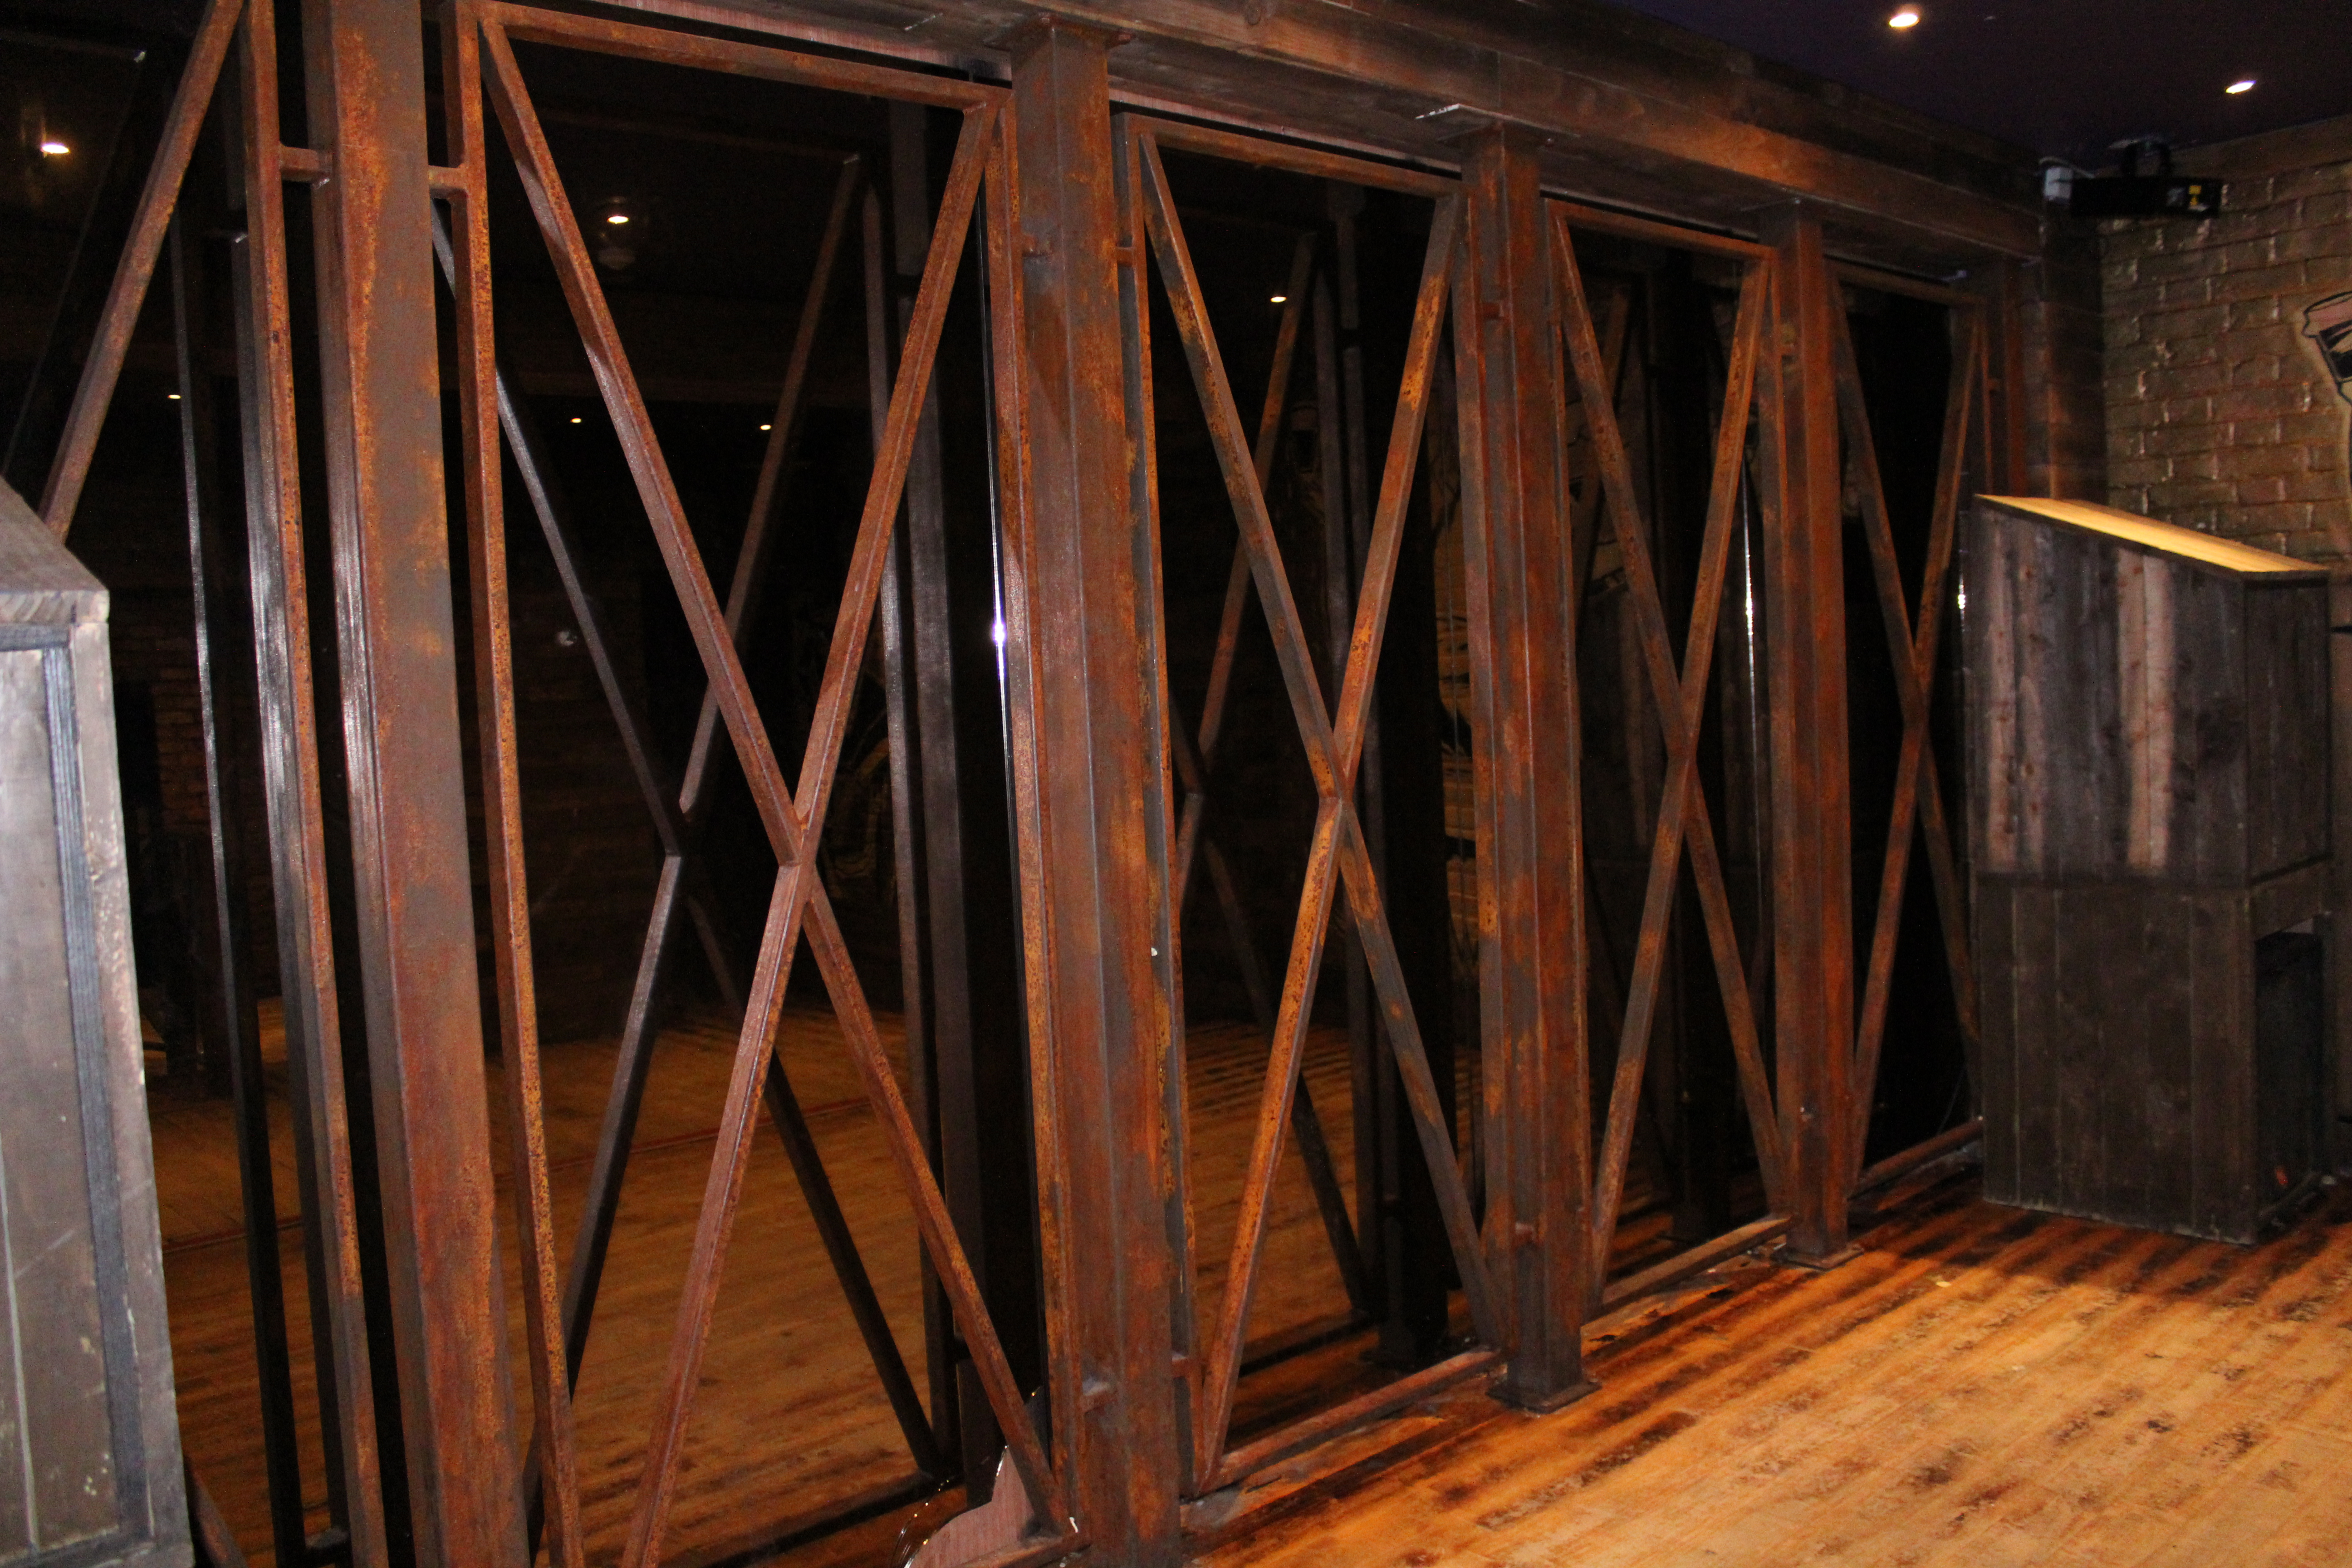 Painted Rust Effect Mild Steel Frame in Front of Mirror at Stage Area (2)